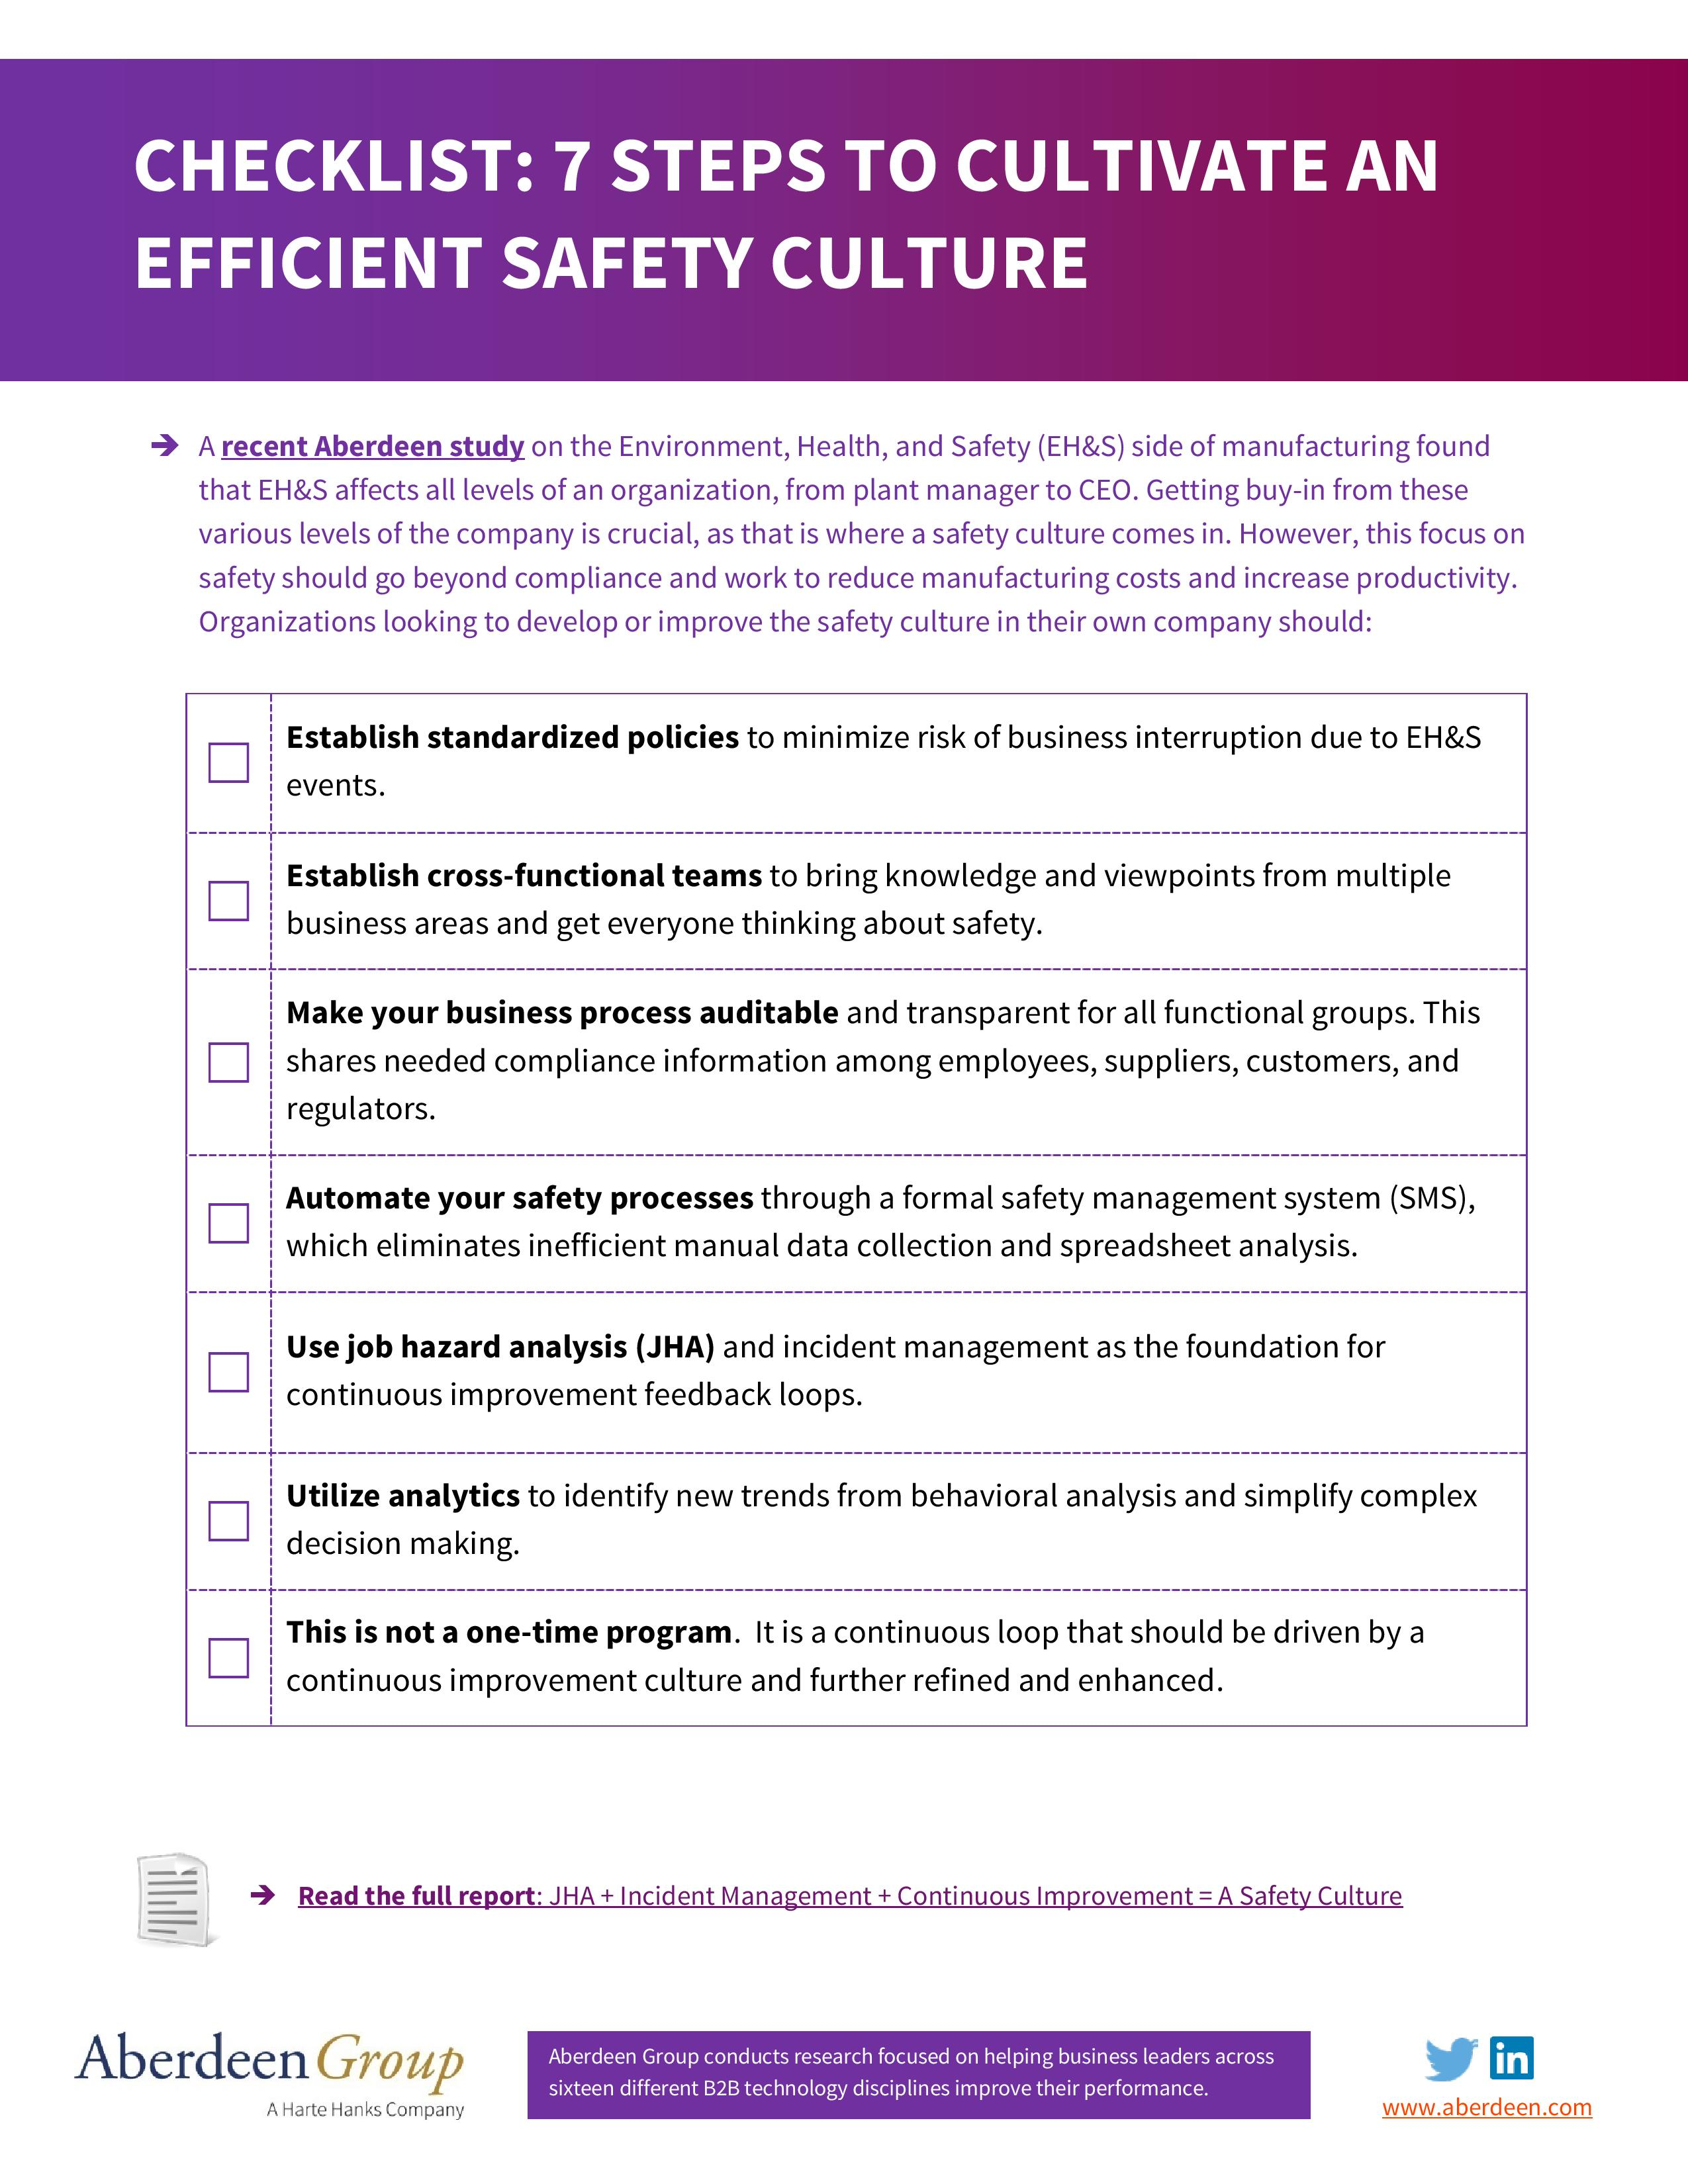 Checklist 7 Steps To Cultivate An Efficient Safety Culture